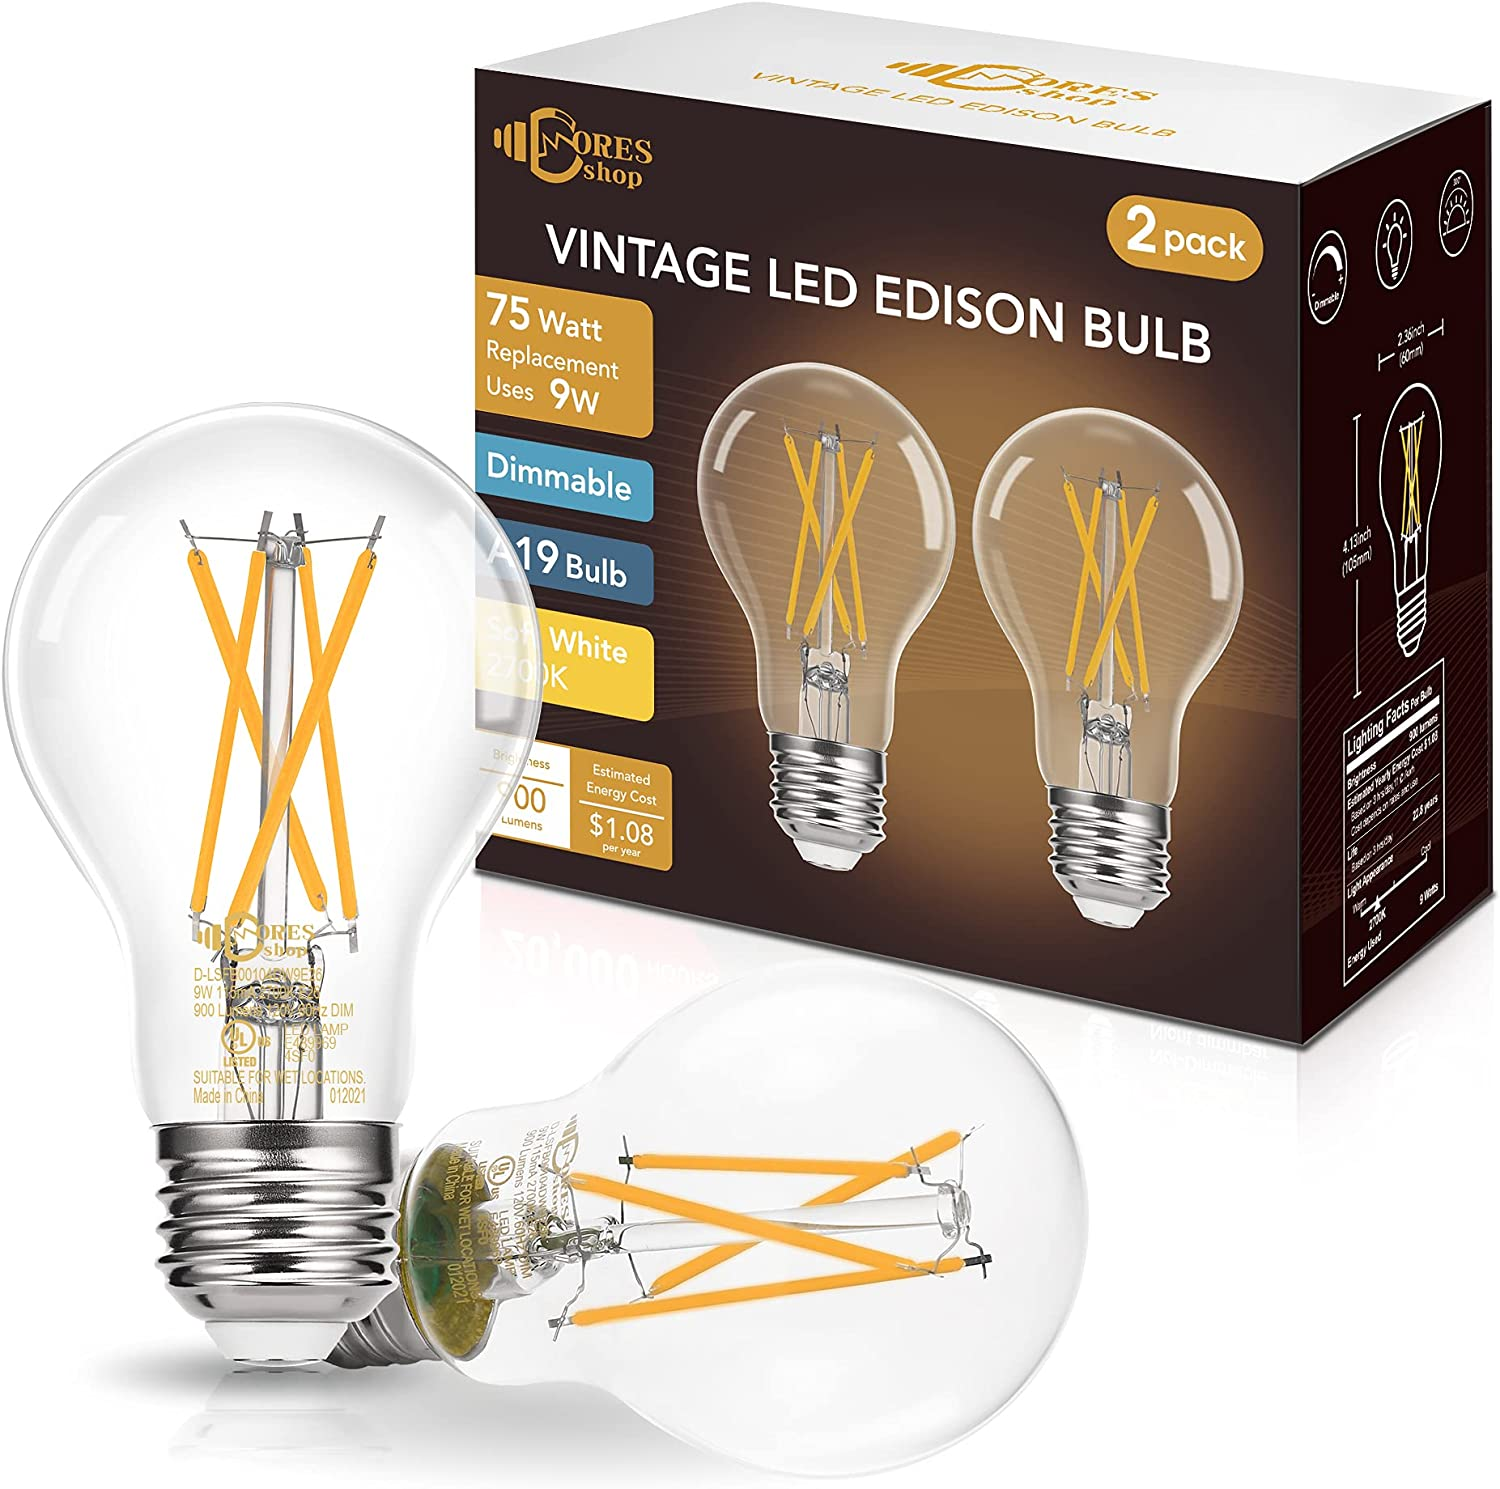 Dimmable A19 LED Edison Bulb 75W Equivalent, DORESshop 9W A19 Vintage LED Filament Bulb, 2700K Soft White, 900LM, Antique Style Decorative Bulbs for Cafe Home Office, Classic Clear Glass, 2Pack